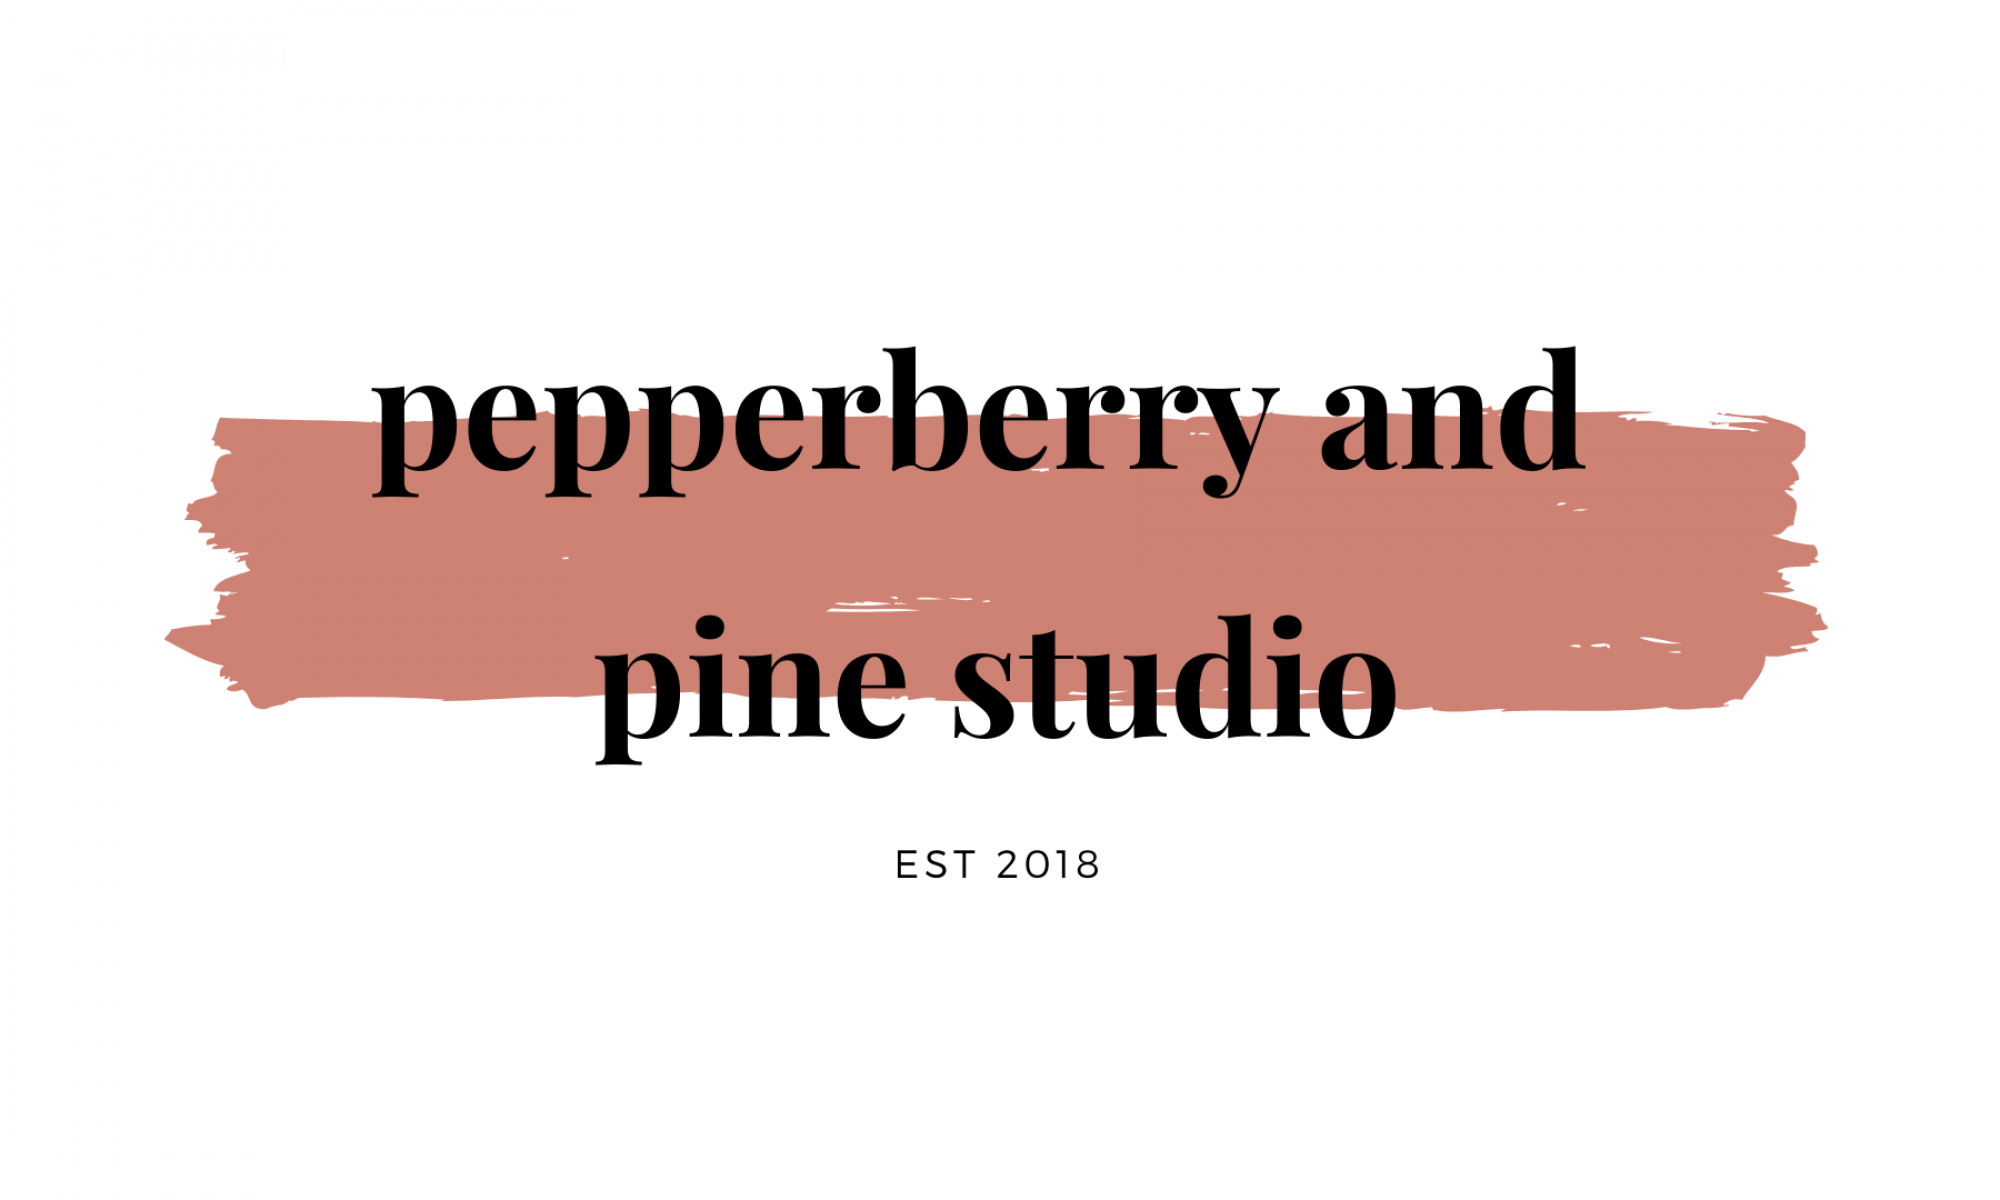 Pepperberry and Pine Studio